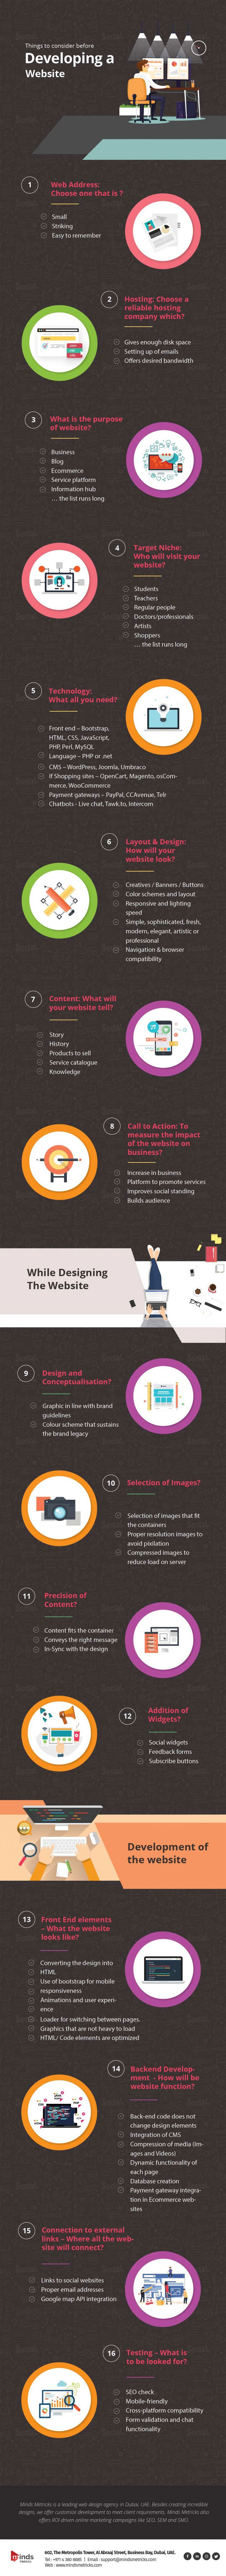 Things to Consider When Developing Website #infographic